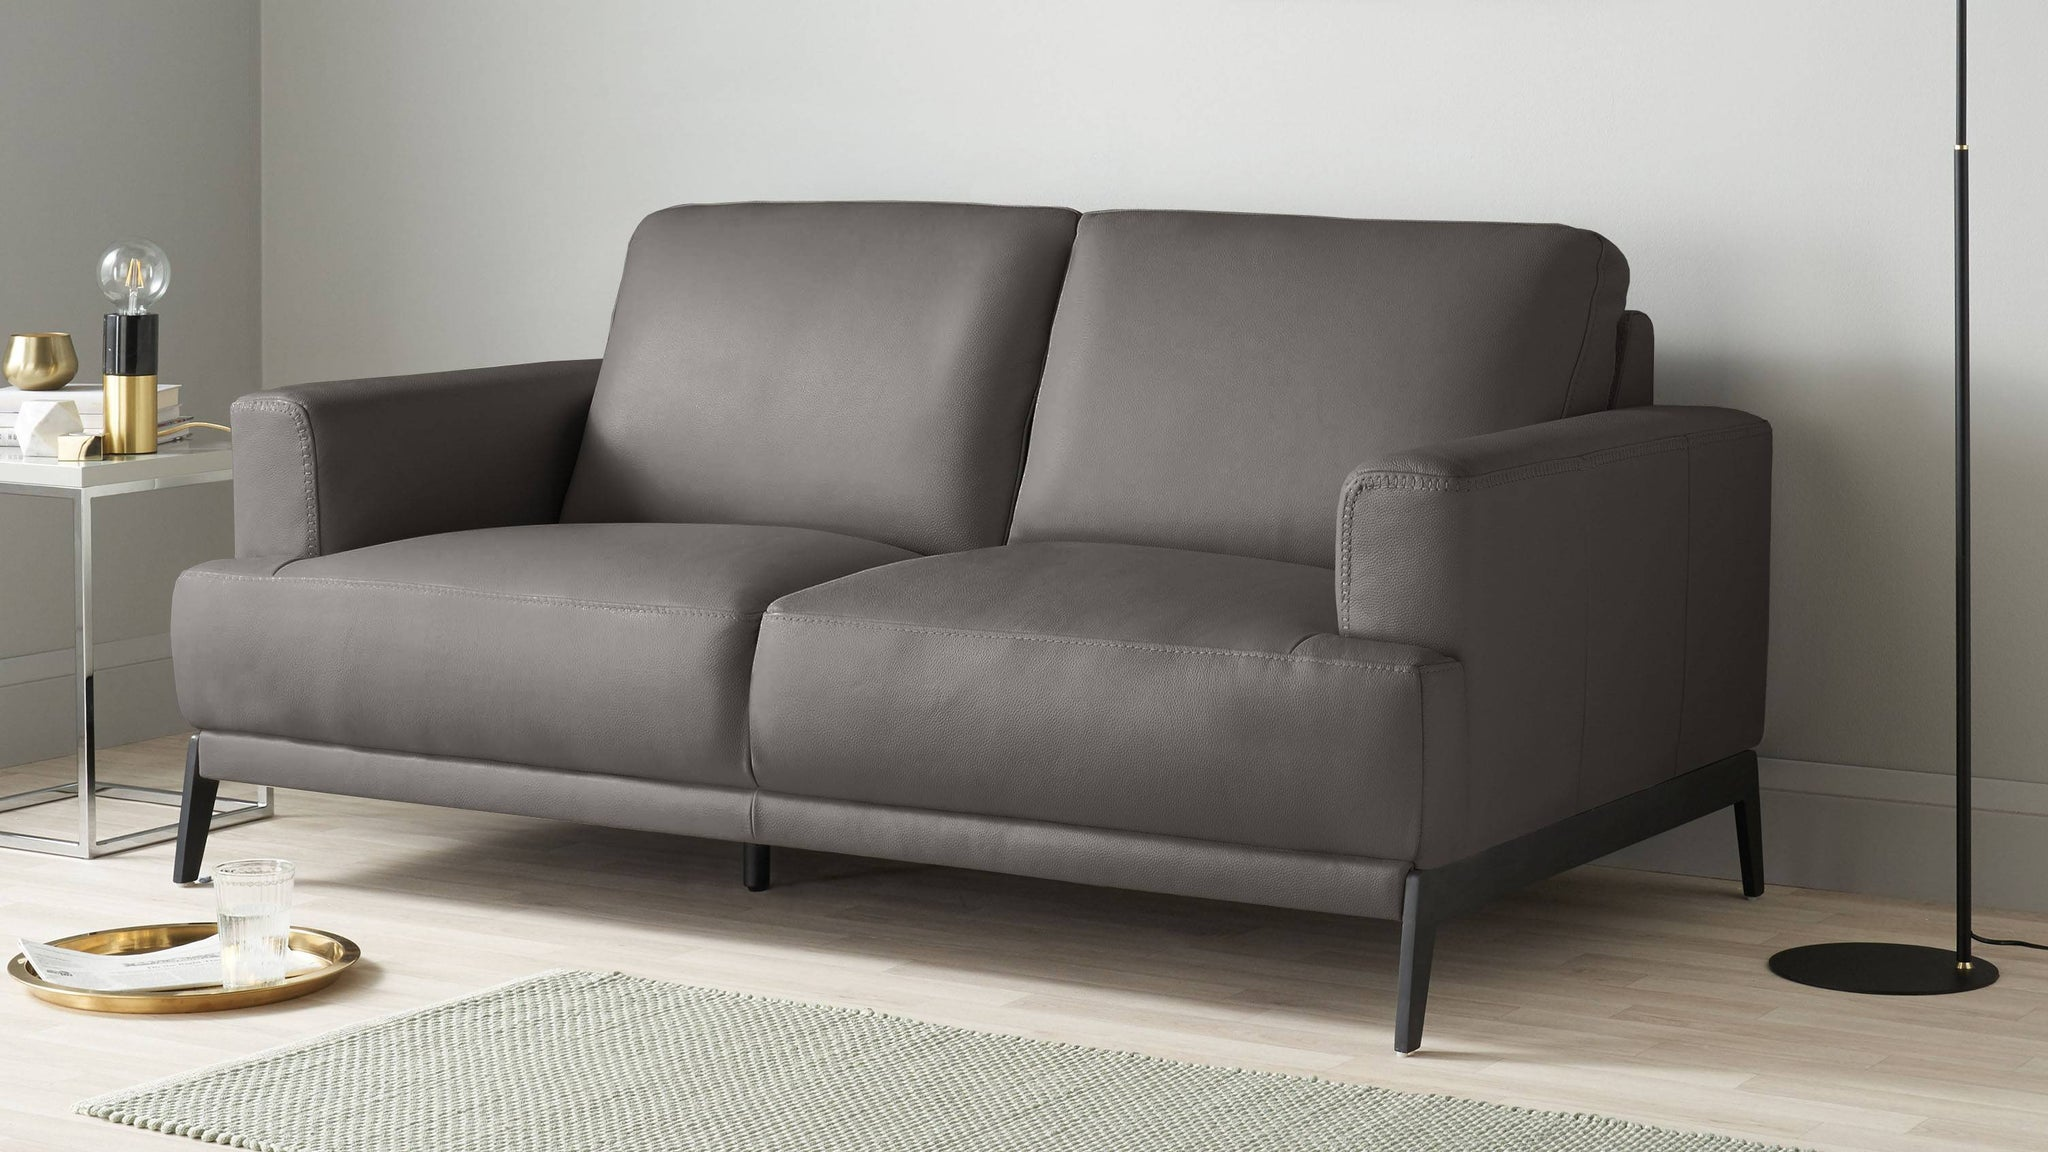 Dark warm grey leather sofa